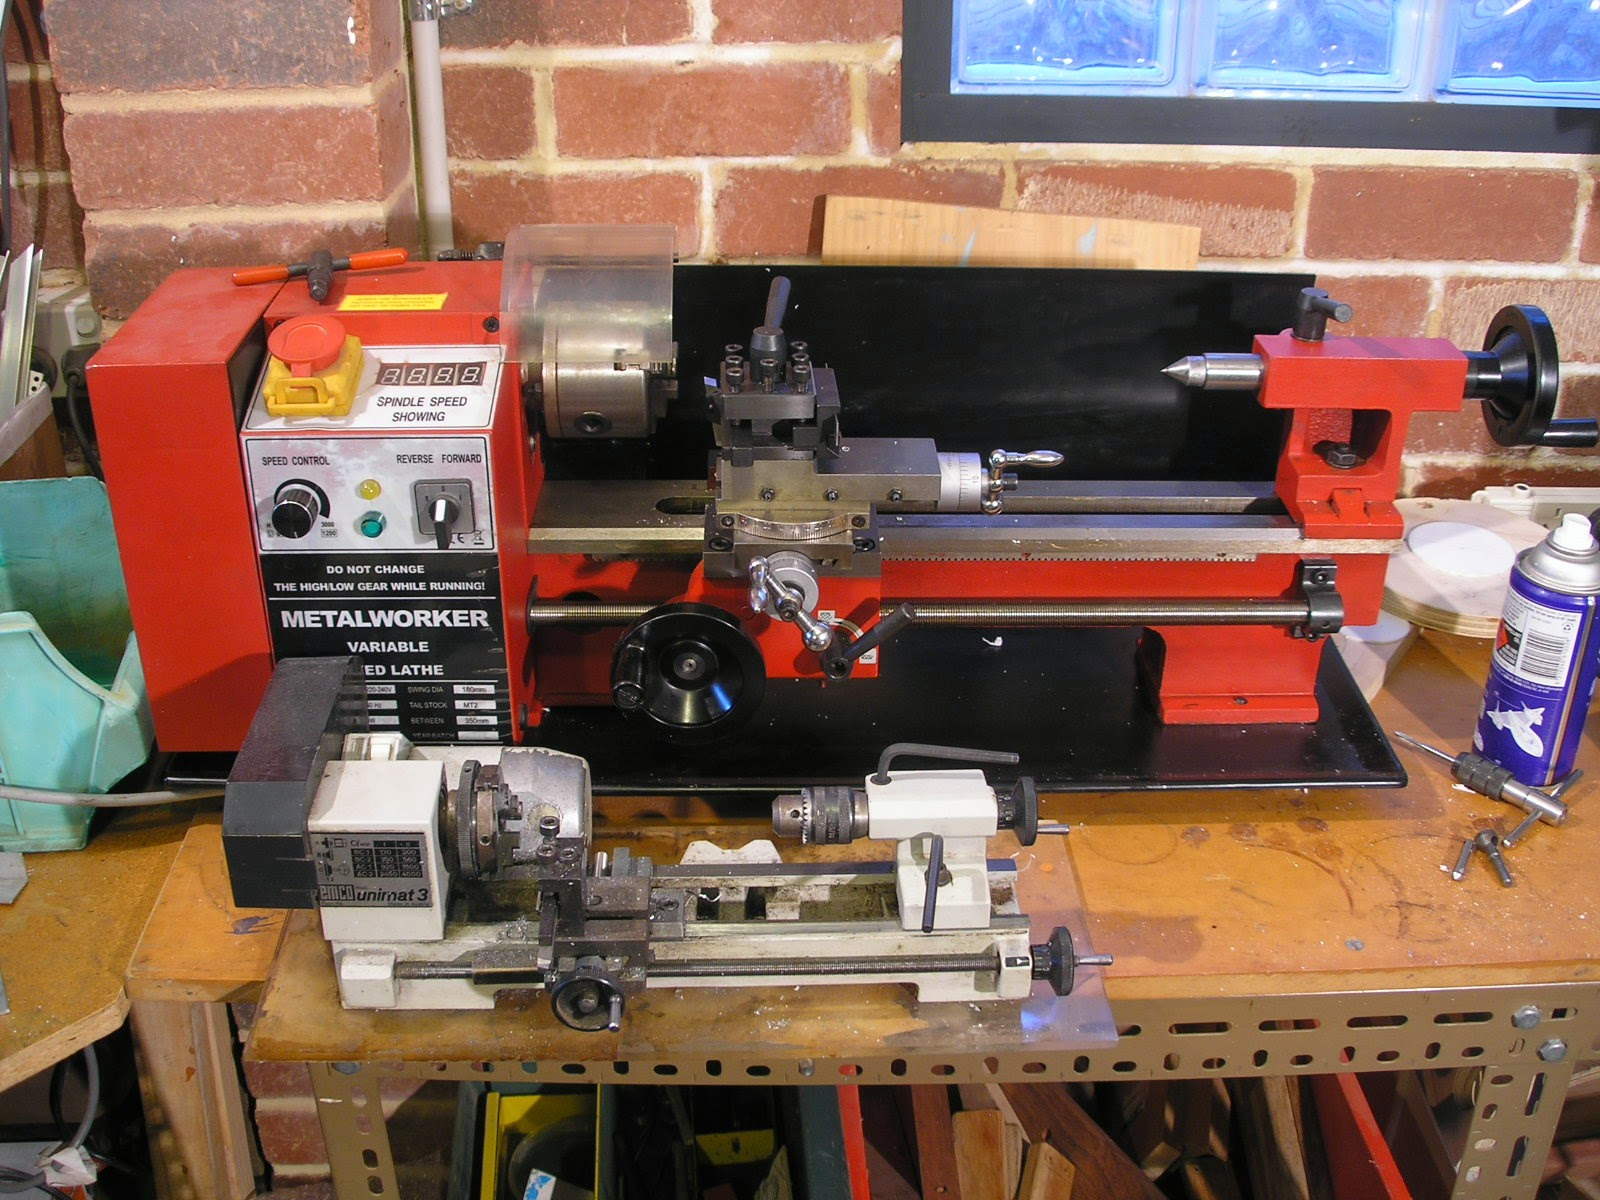 Rc Sci Fi Mini Lathe Reversing A You Can See How Much Bigger It Is Than My Unimat 3 In The Photo Below C3 Classed As I Guess Must Be Micro